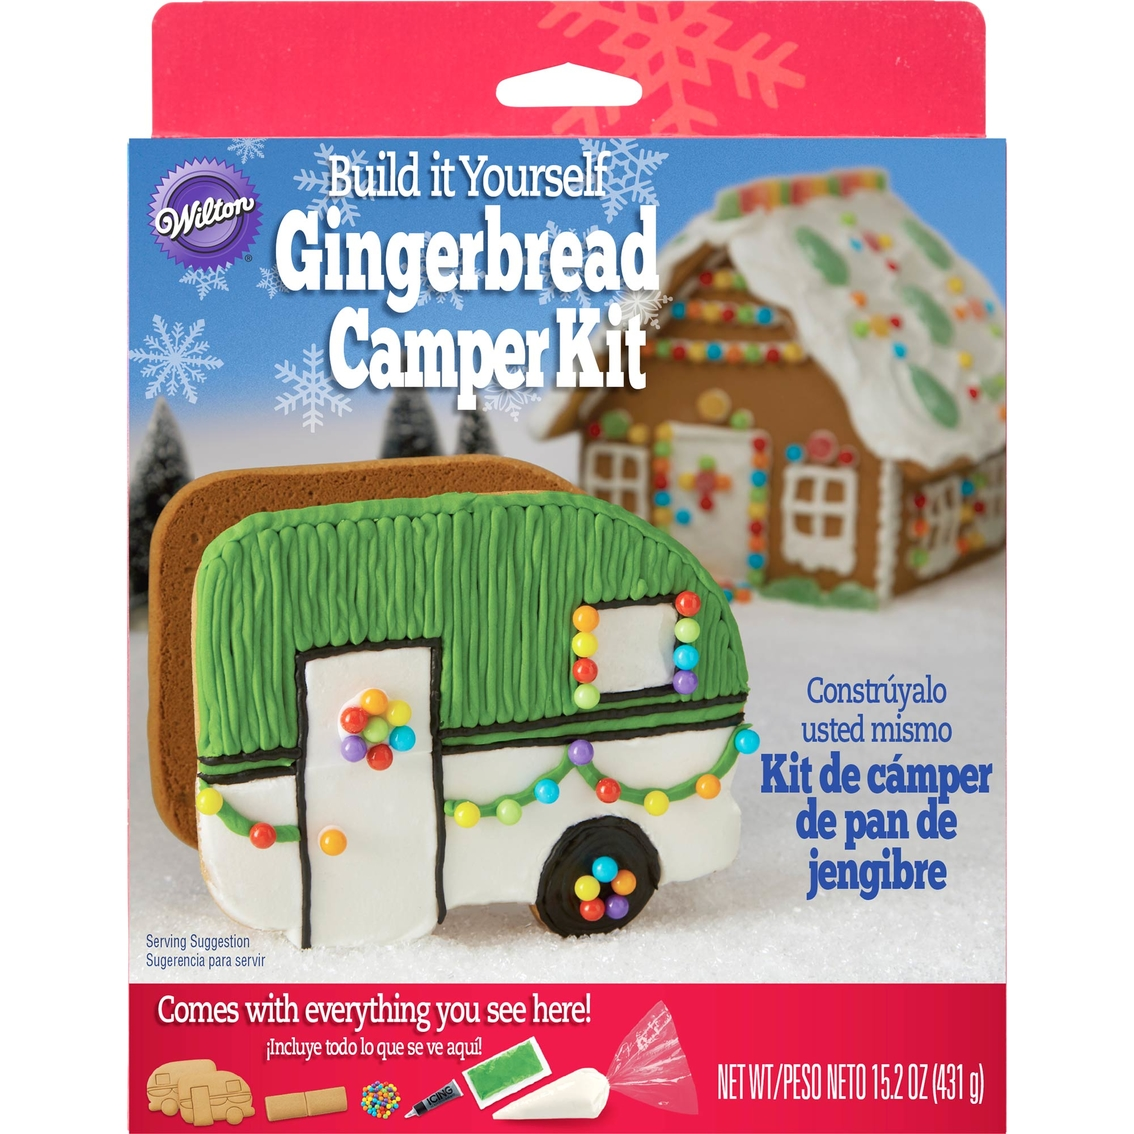 Build It Yourself Campers Build It Yourself Cabin Kits: Wilton Build It Yourself Gingerbread Camper Kit